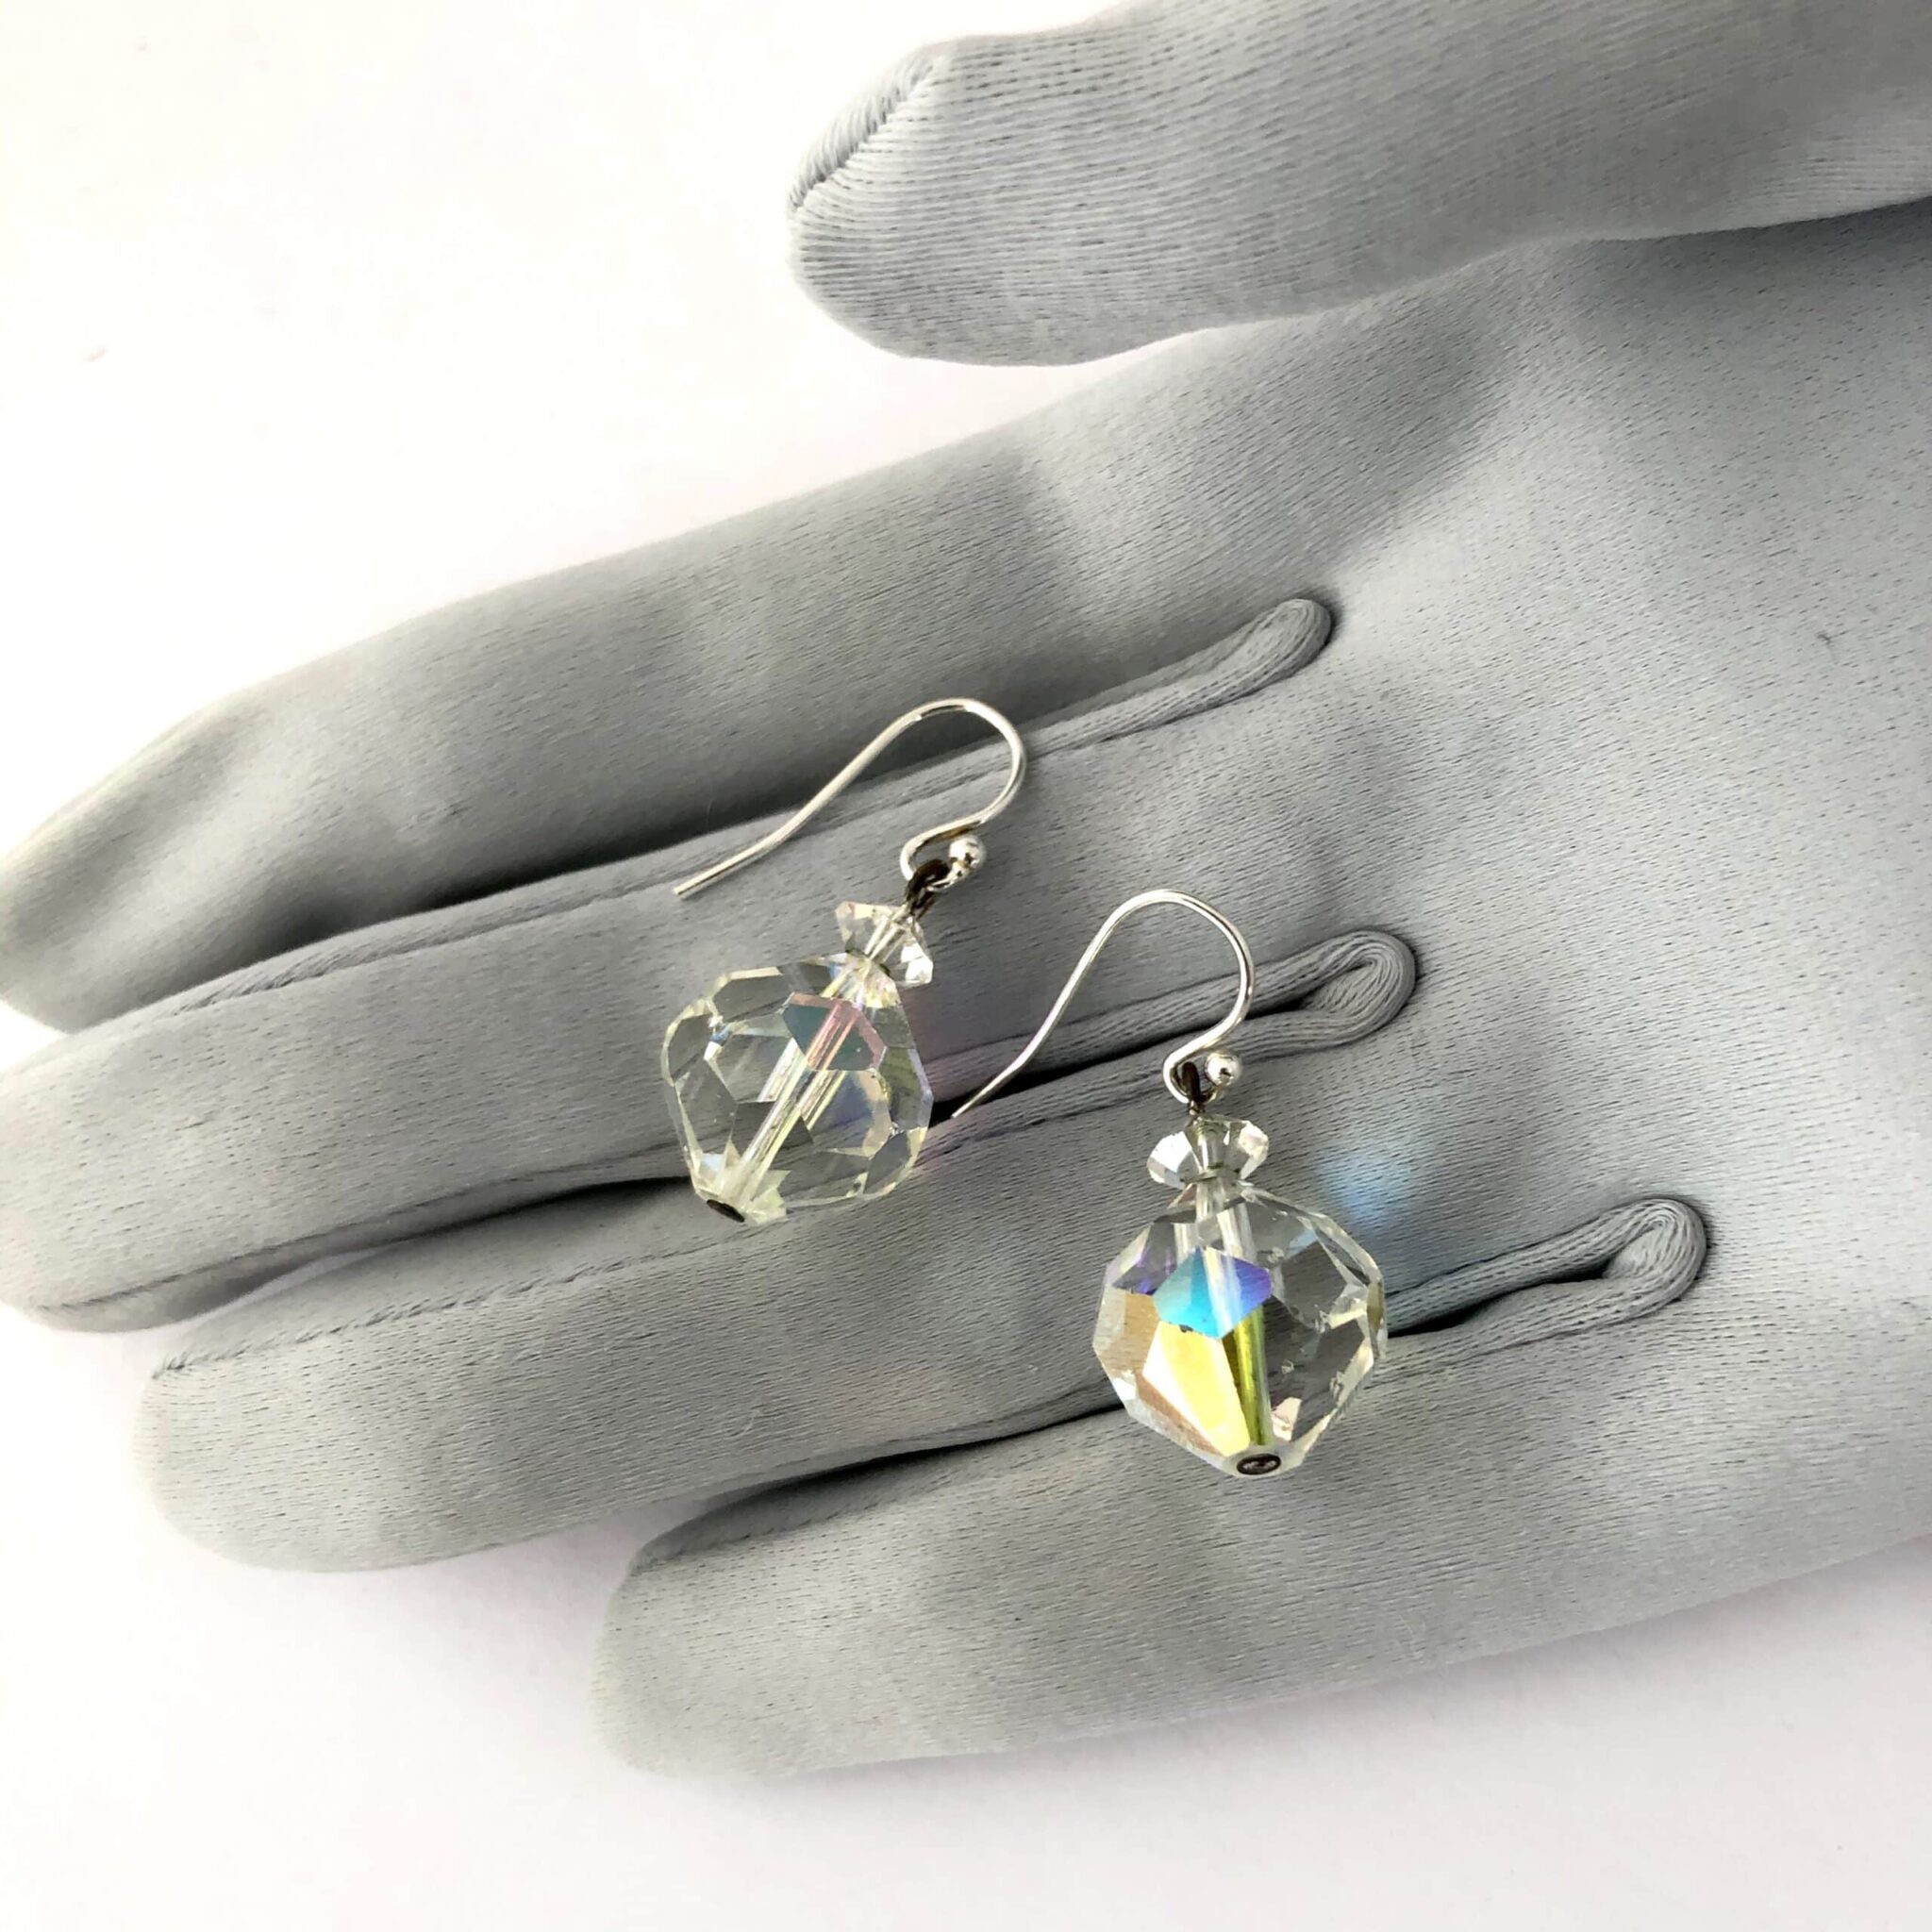 Upcycled Crystal Earrings By My Vintage Obsession